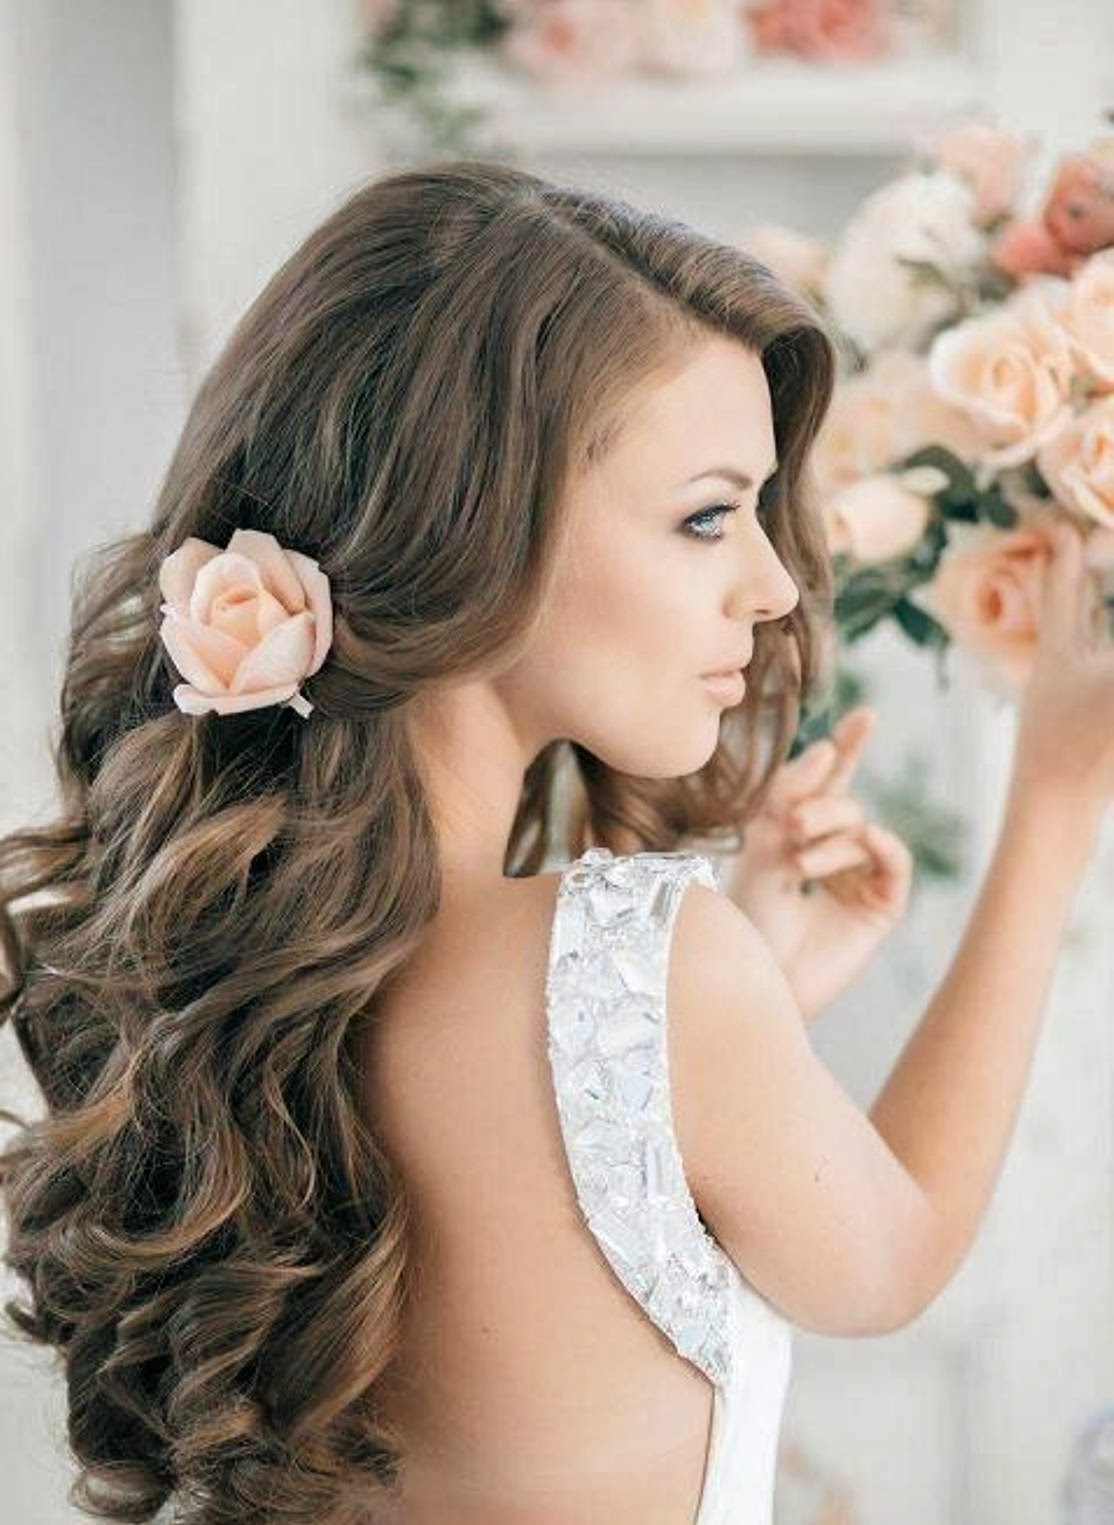 Model Half Up Half Down Wedding Hairstyles DIY Wedding Hairstyles